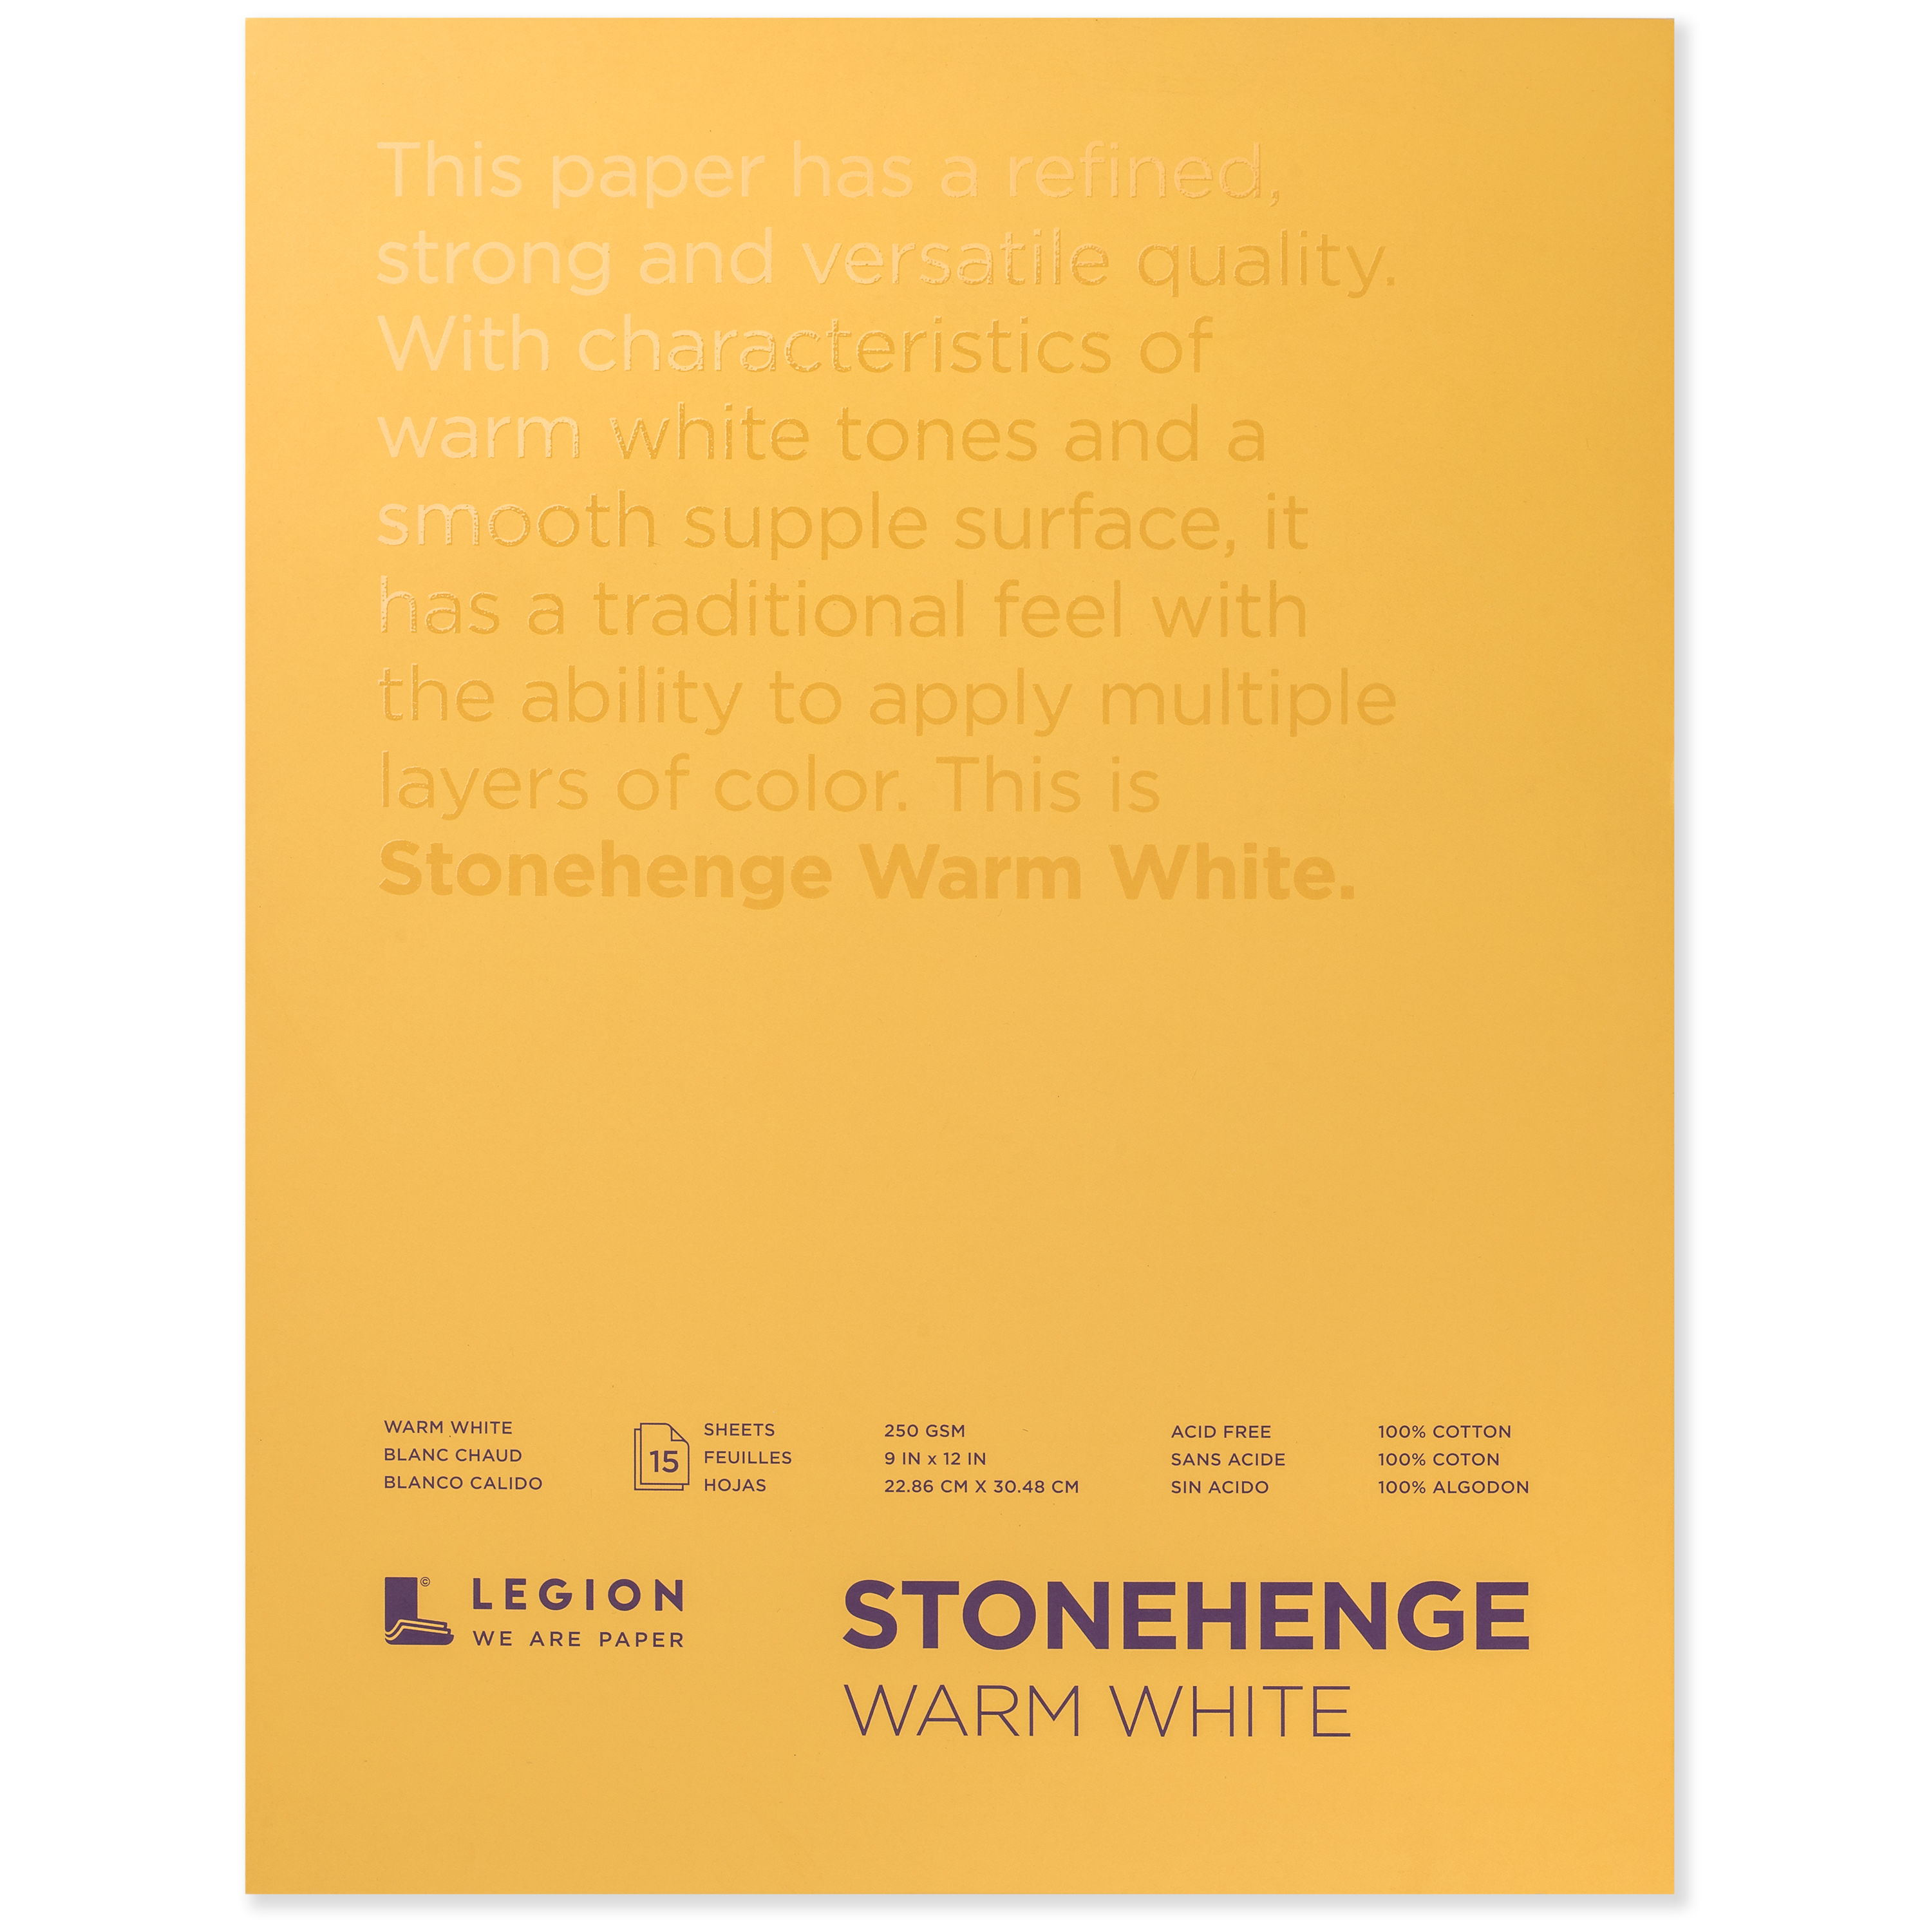 Stonehenge Warm White